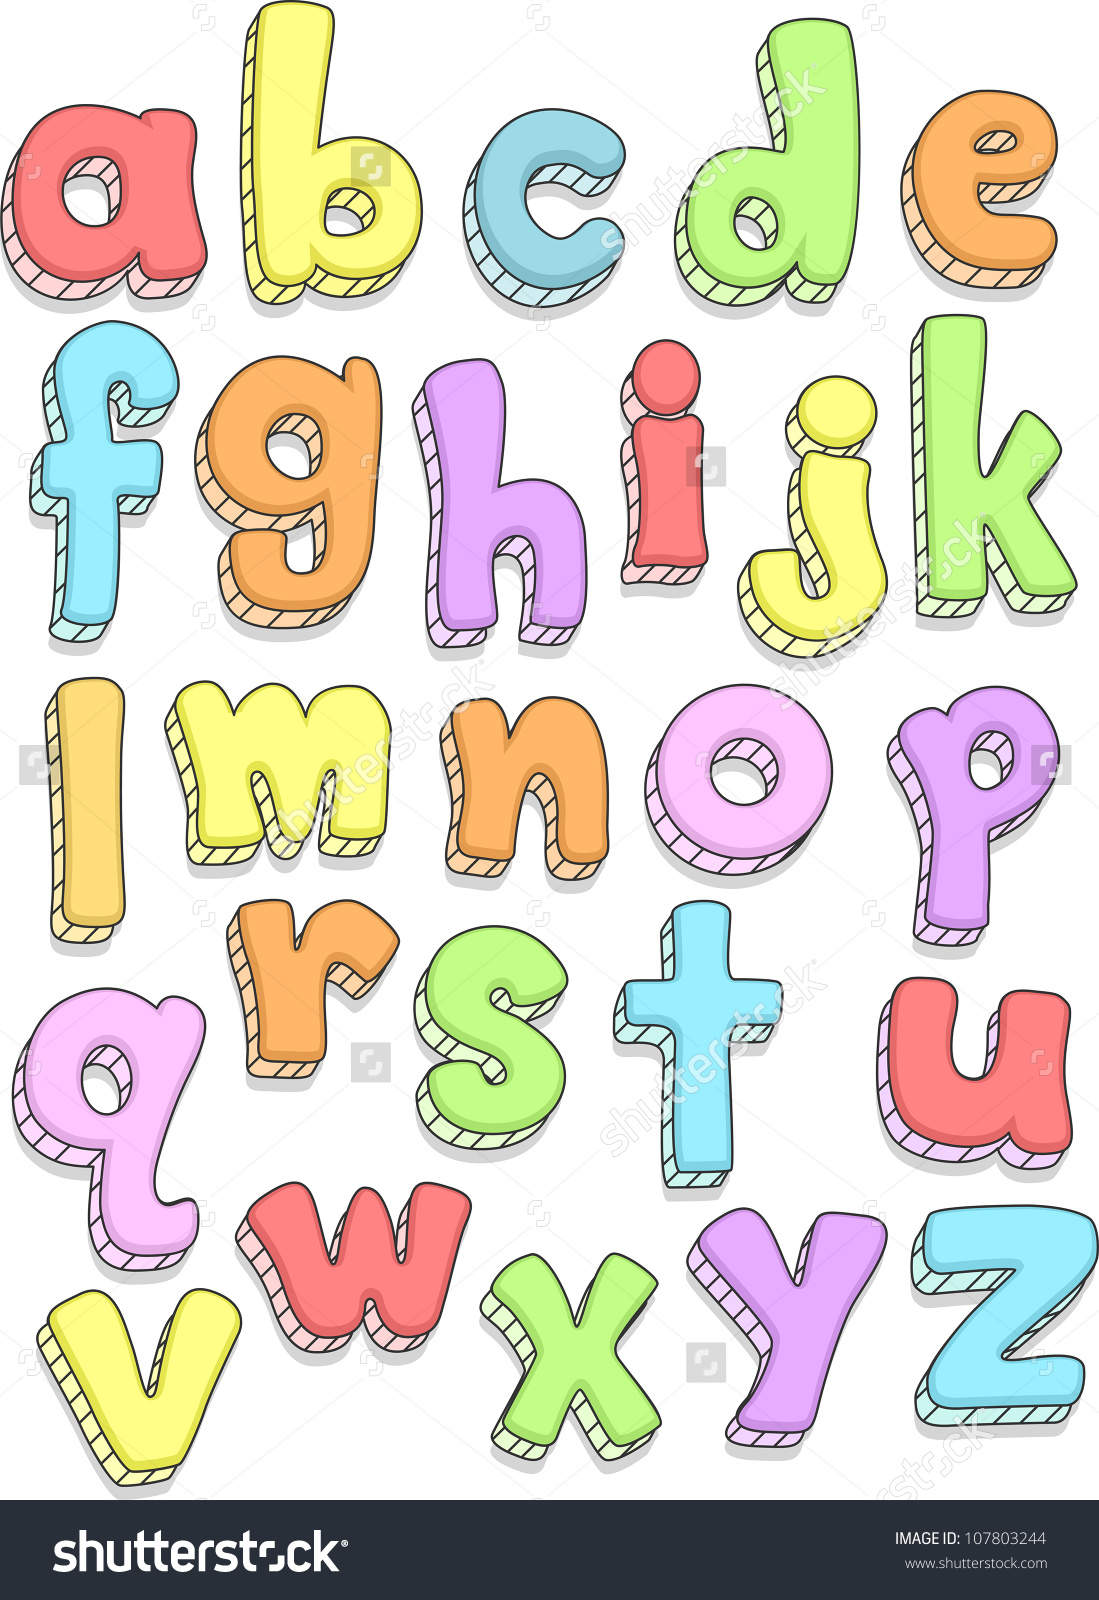 Doodle Illustration Featuring The Small Letters Of Alphabet